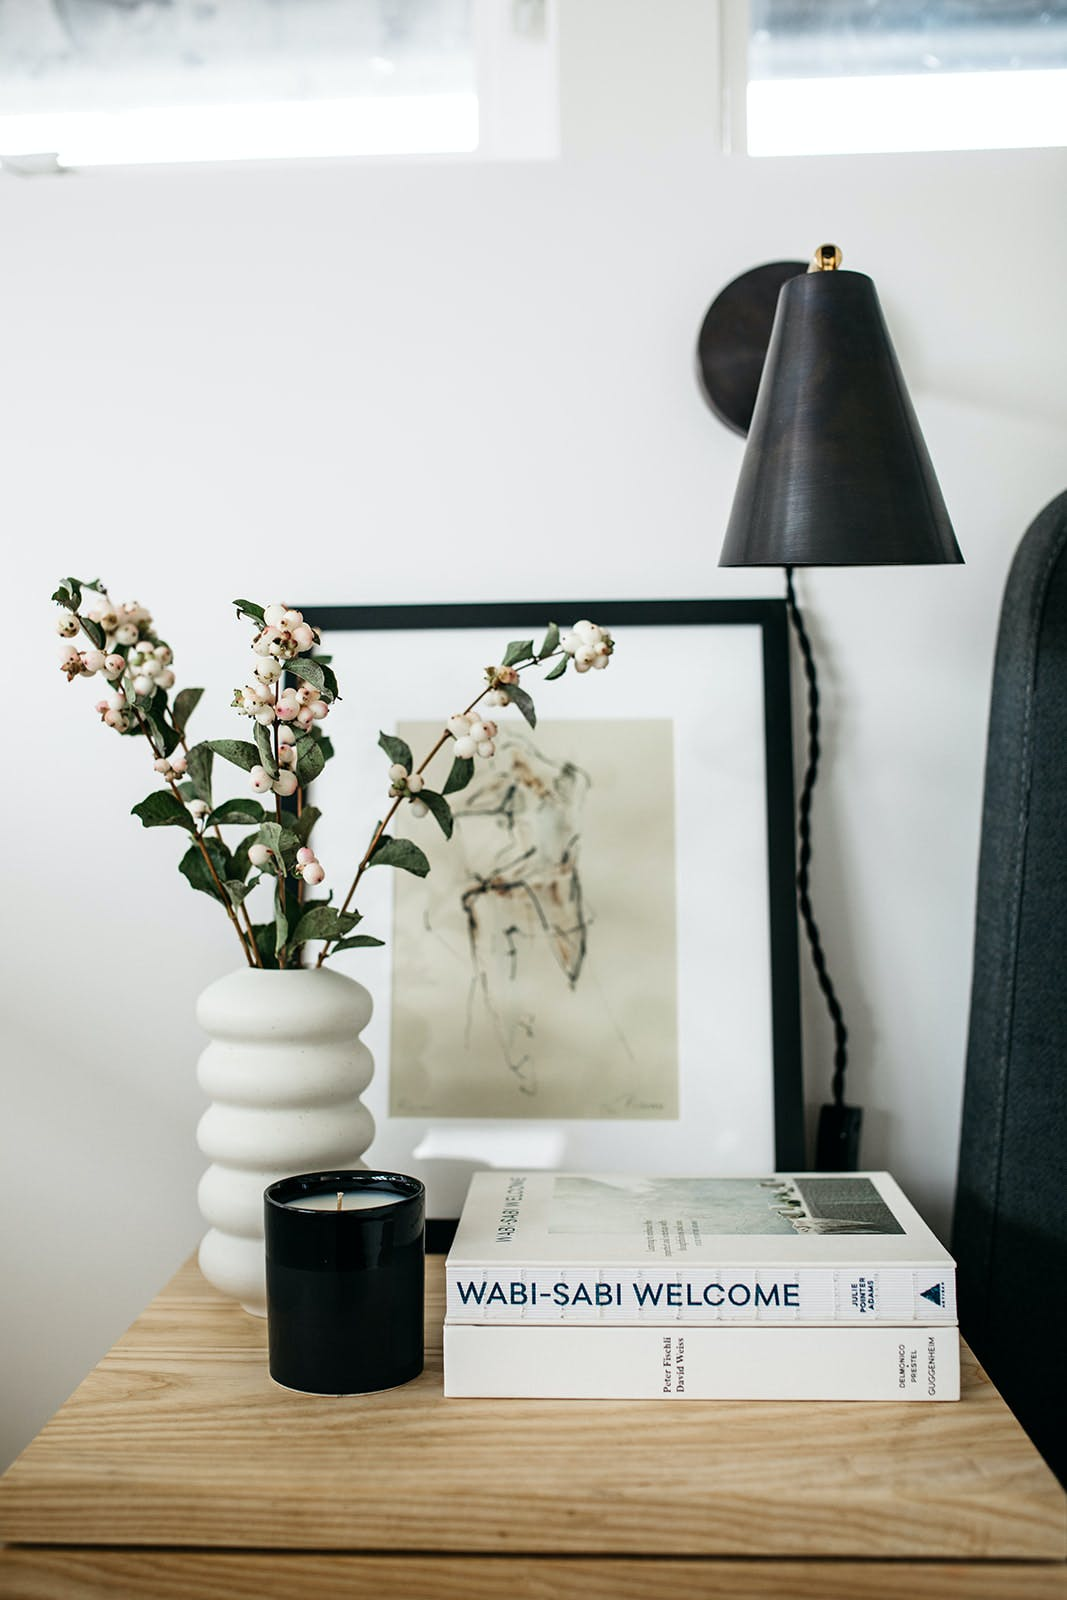 Table with plant, book, painting and lamp